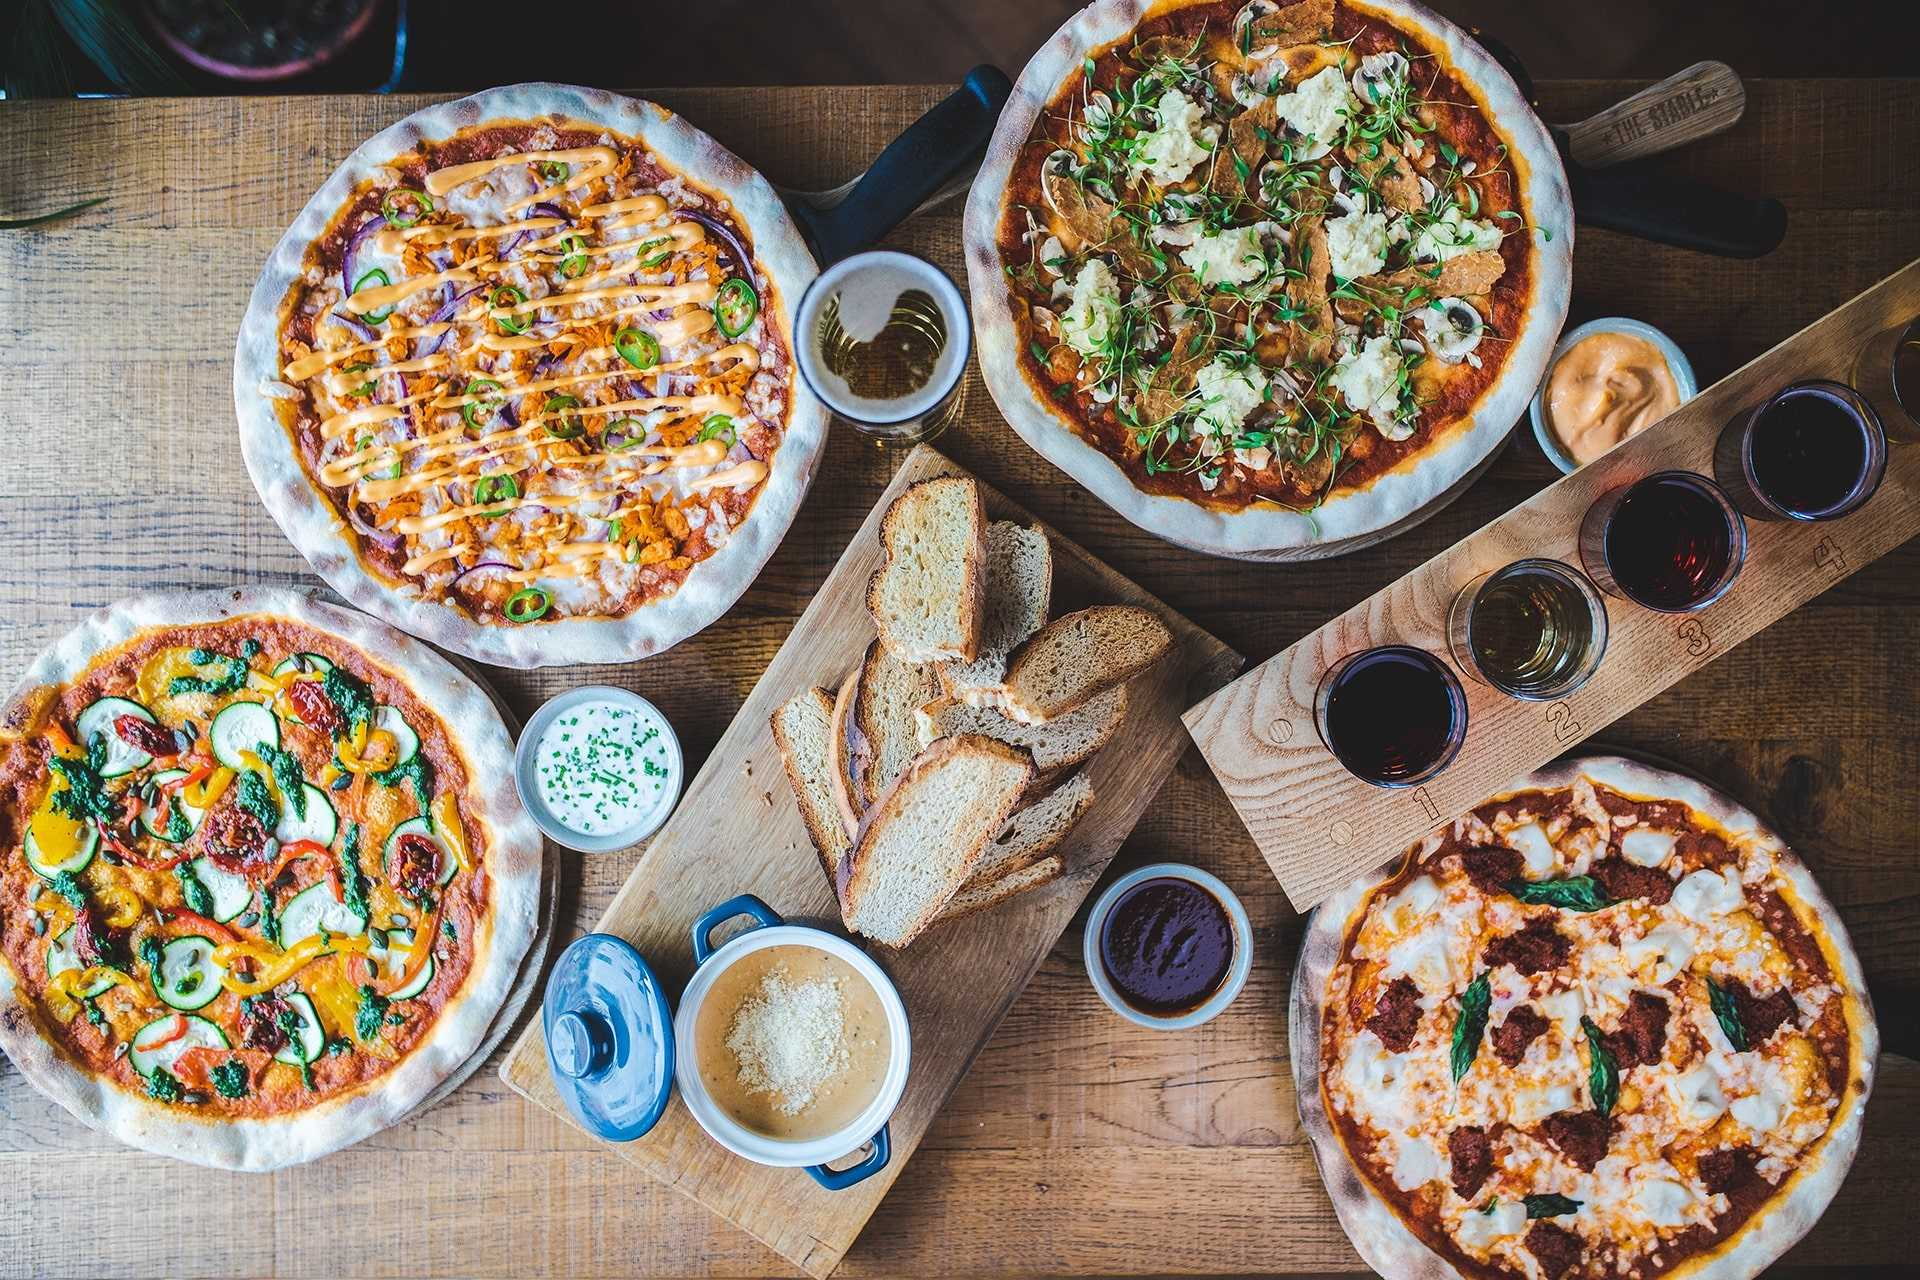 plates-of-pizza-and-bread-on-table-at-the-stable-places-to-eat-in-falmouth